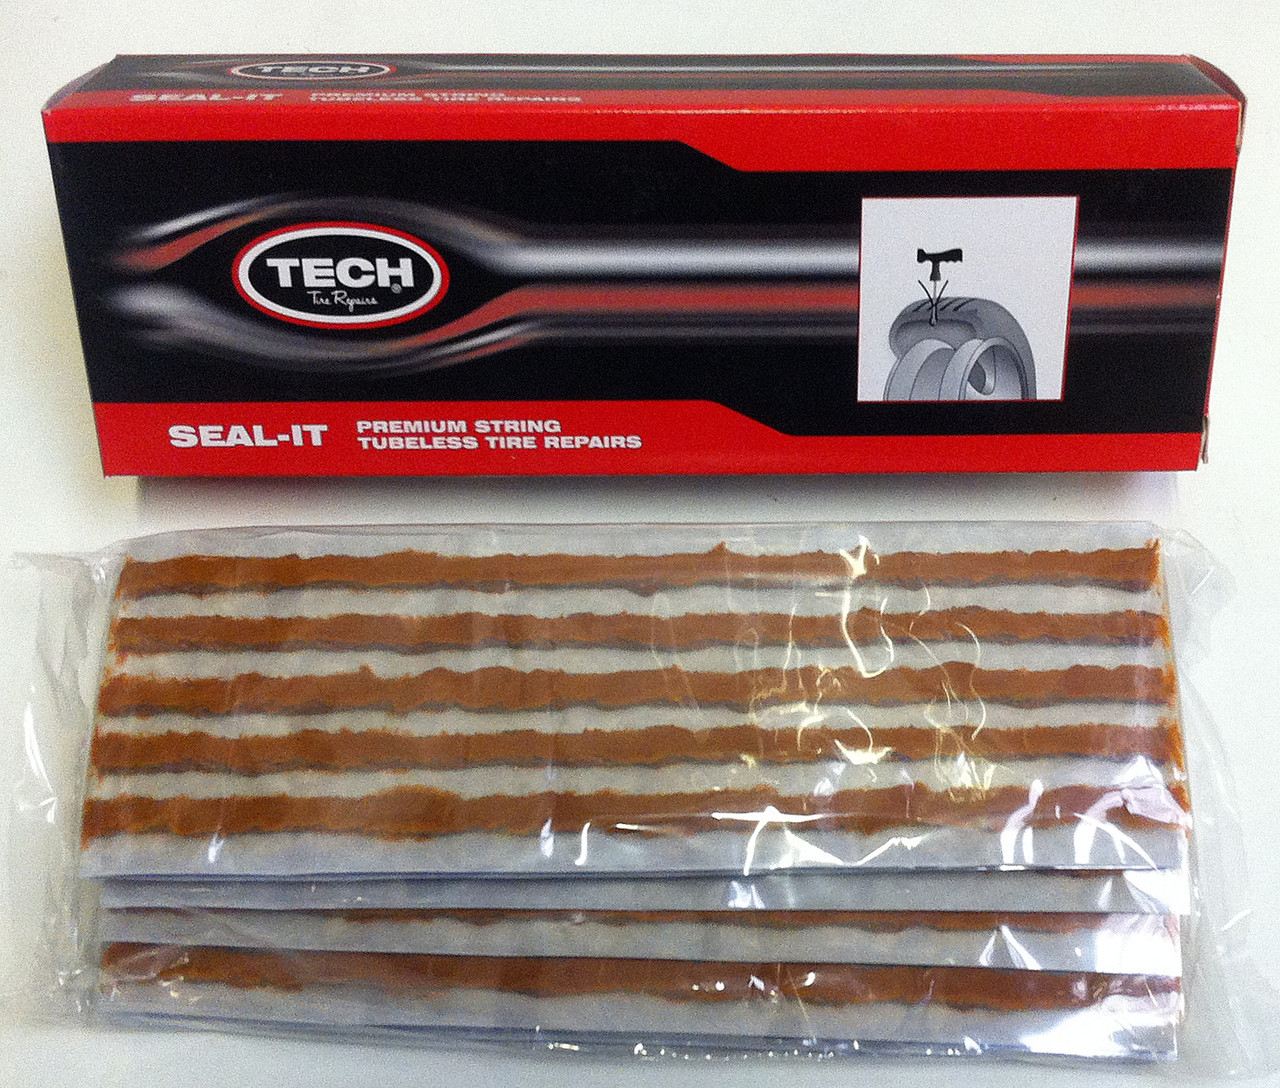 TECH 242BRN 200MM THICK BROWN STRING